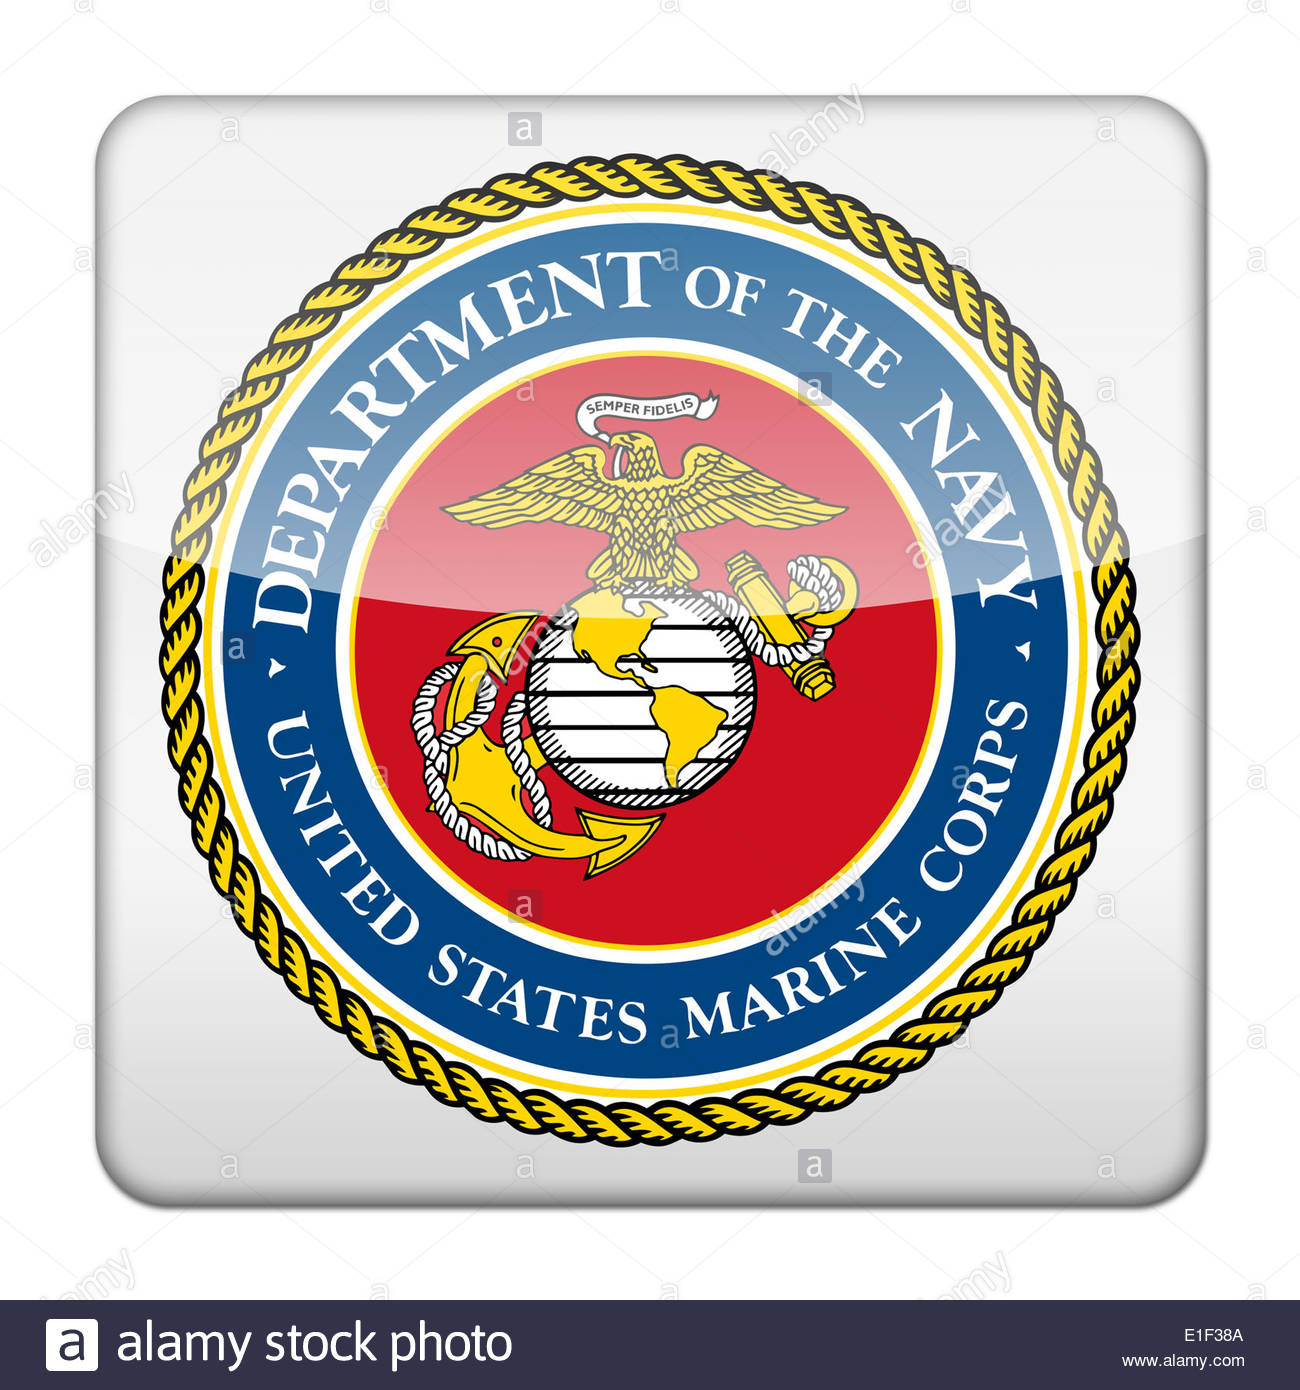 united states marine corps icon logo isolated app button us navy